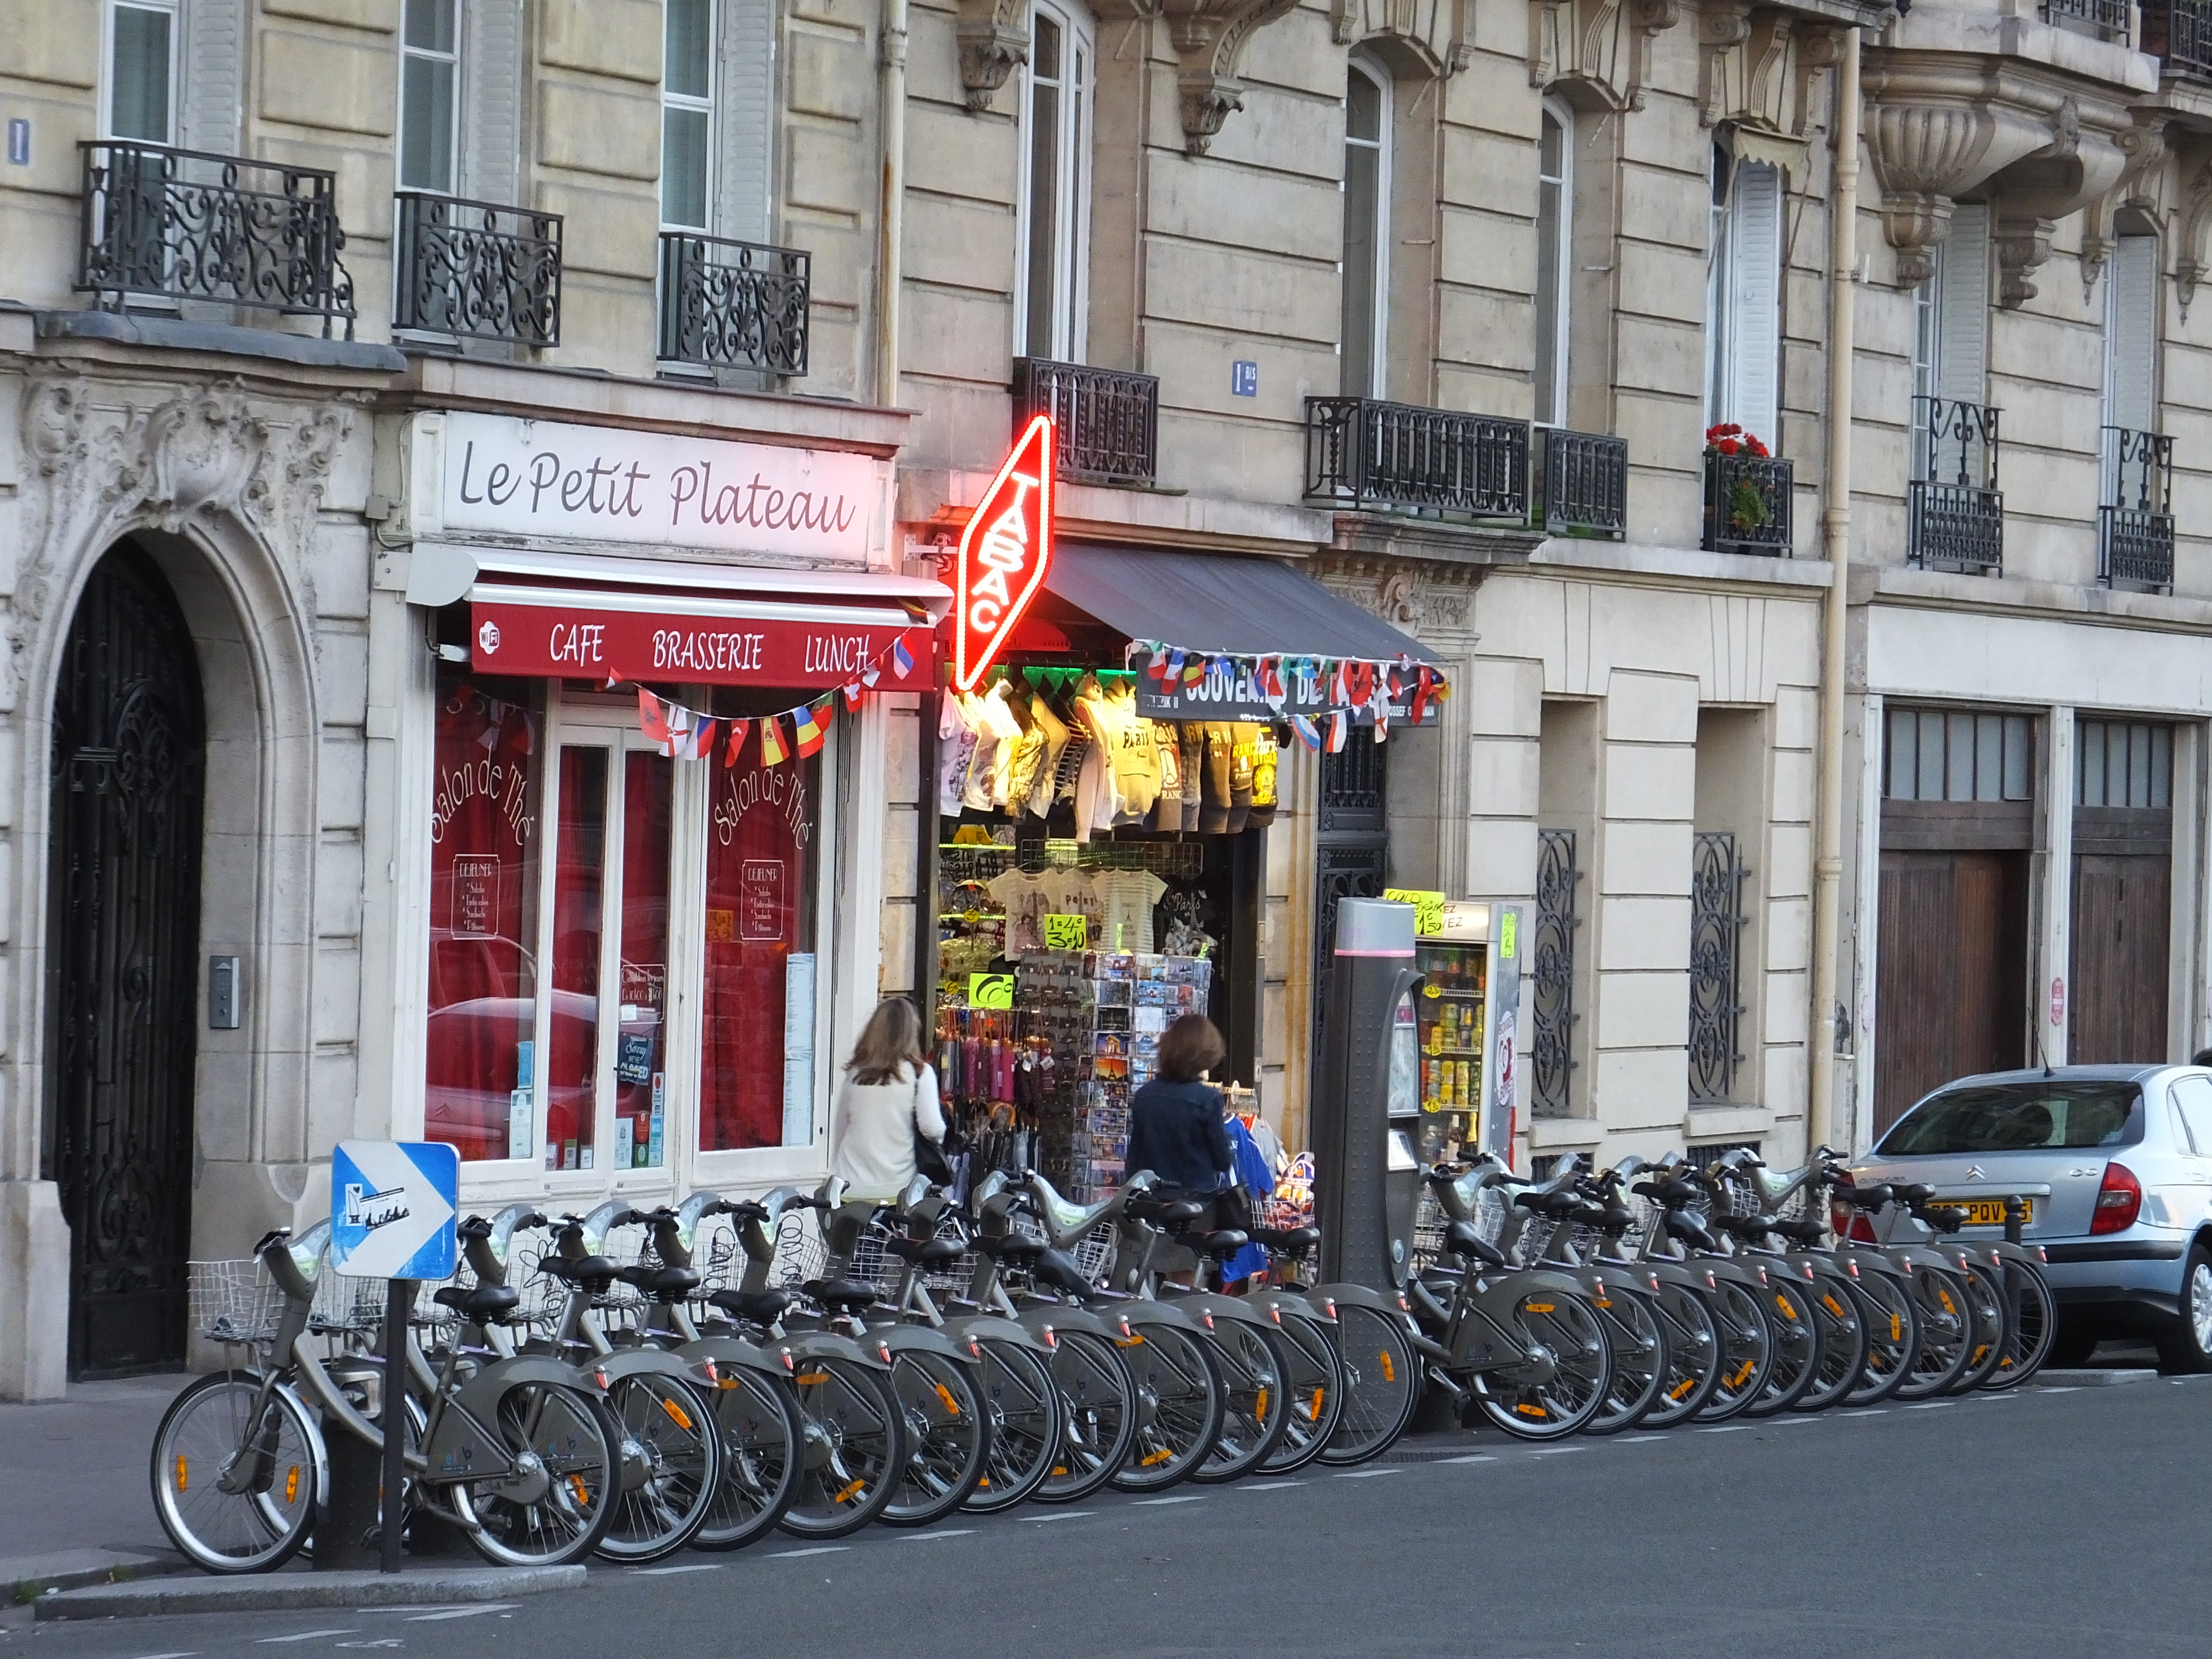 Always a TABAC and the rental bikes.